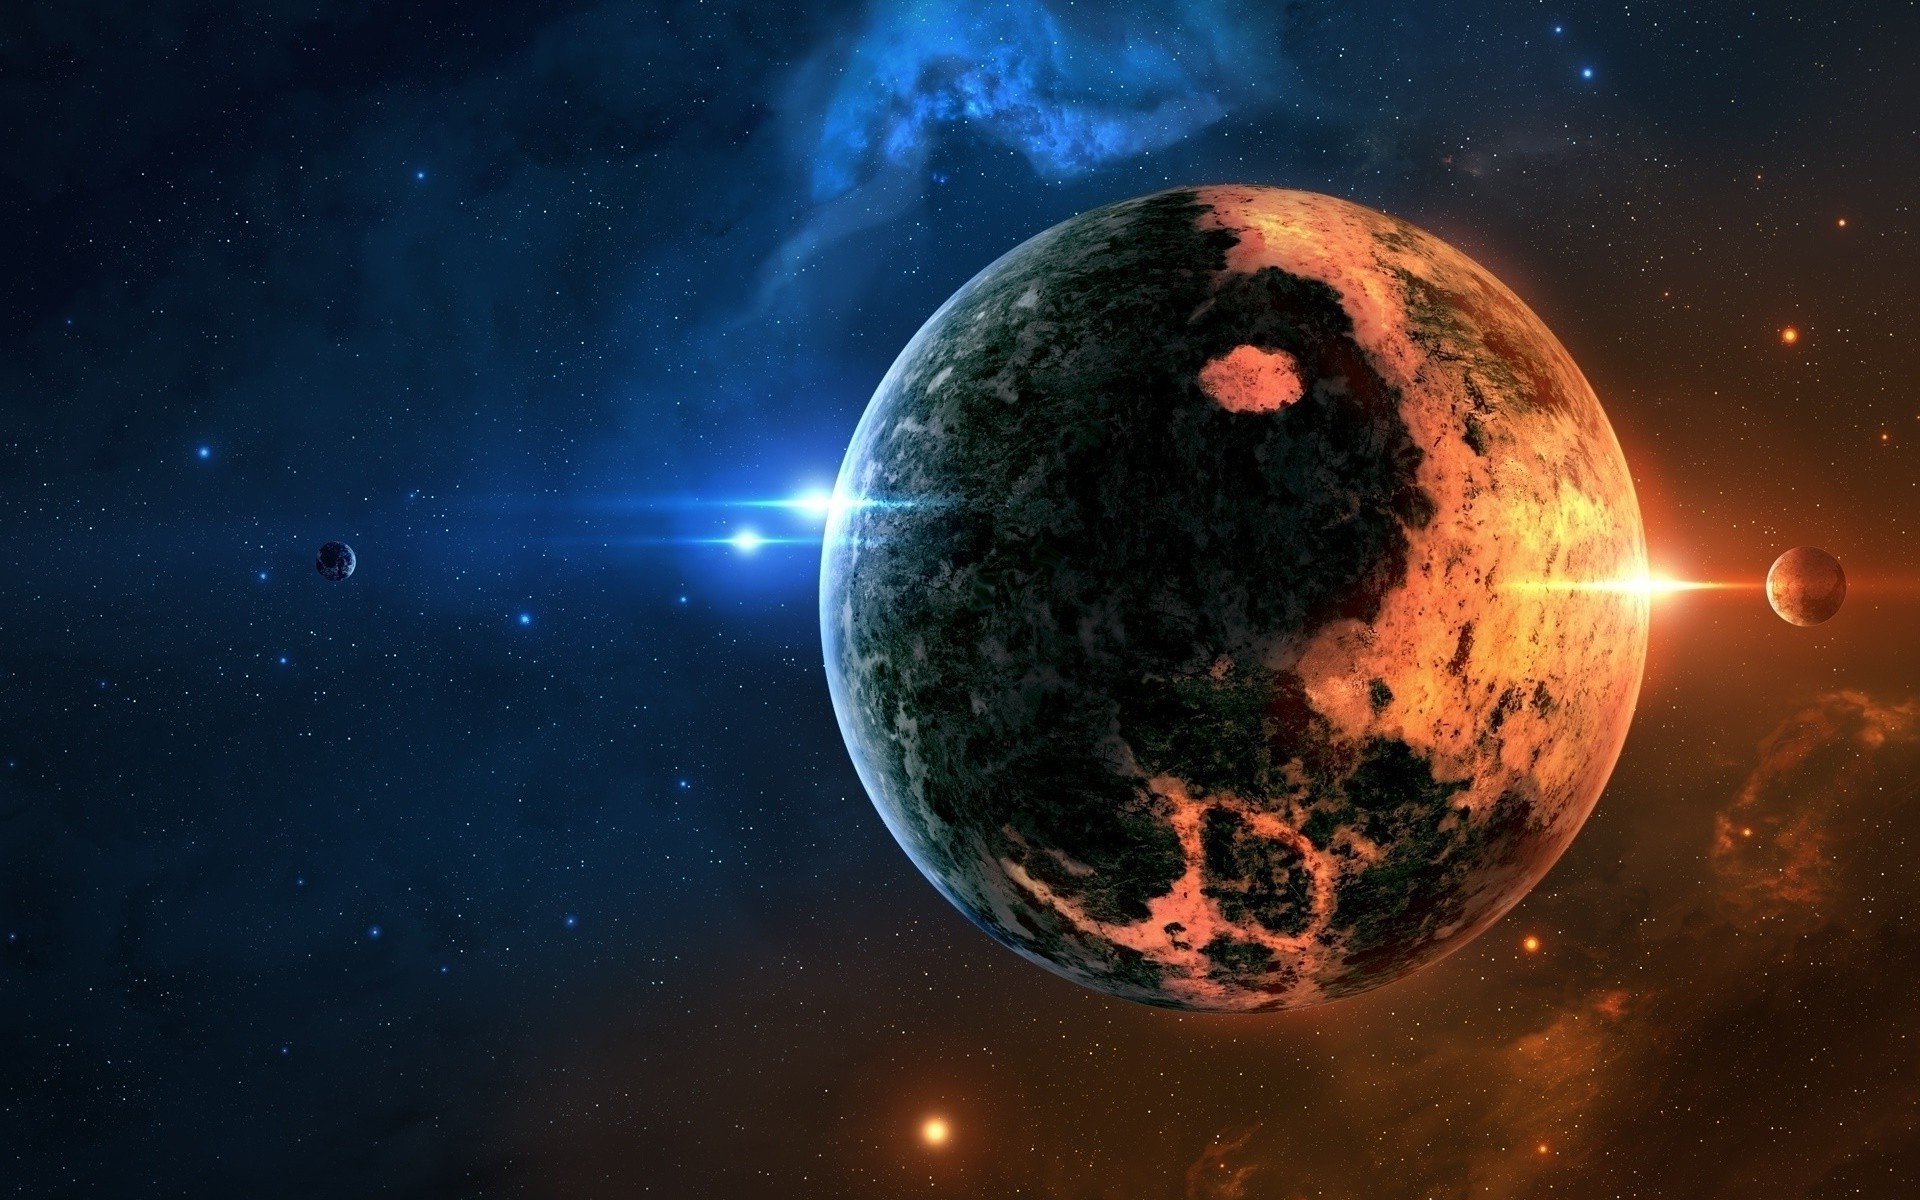 3d Wallpapers Hd Full Hd 1080p 1920x1080 Space Art Space Planet Glowing Yin And Yang Wallpapers